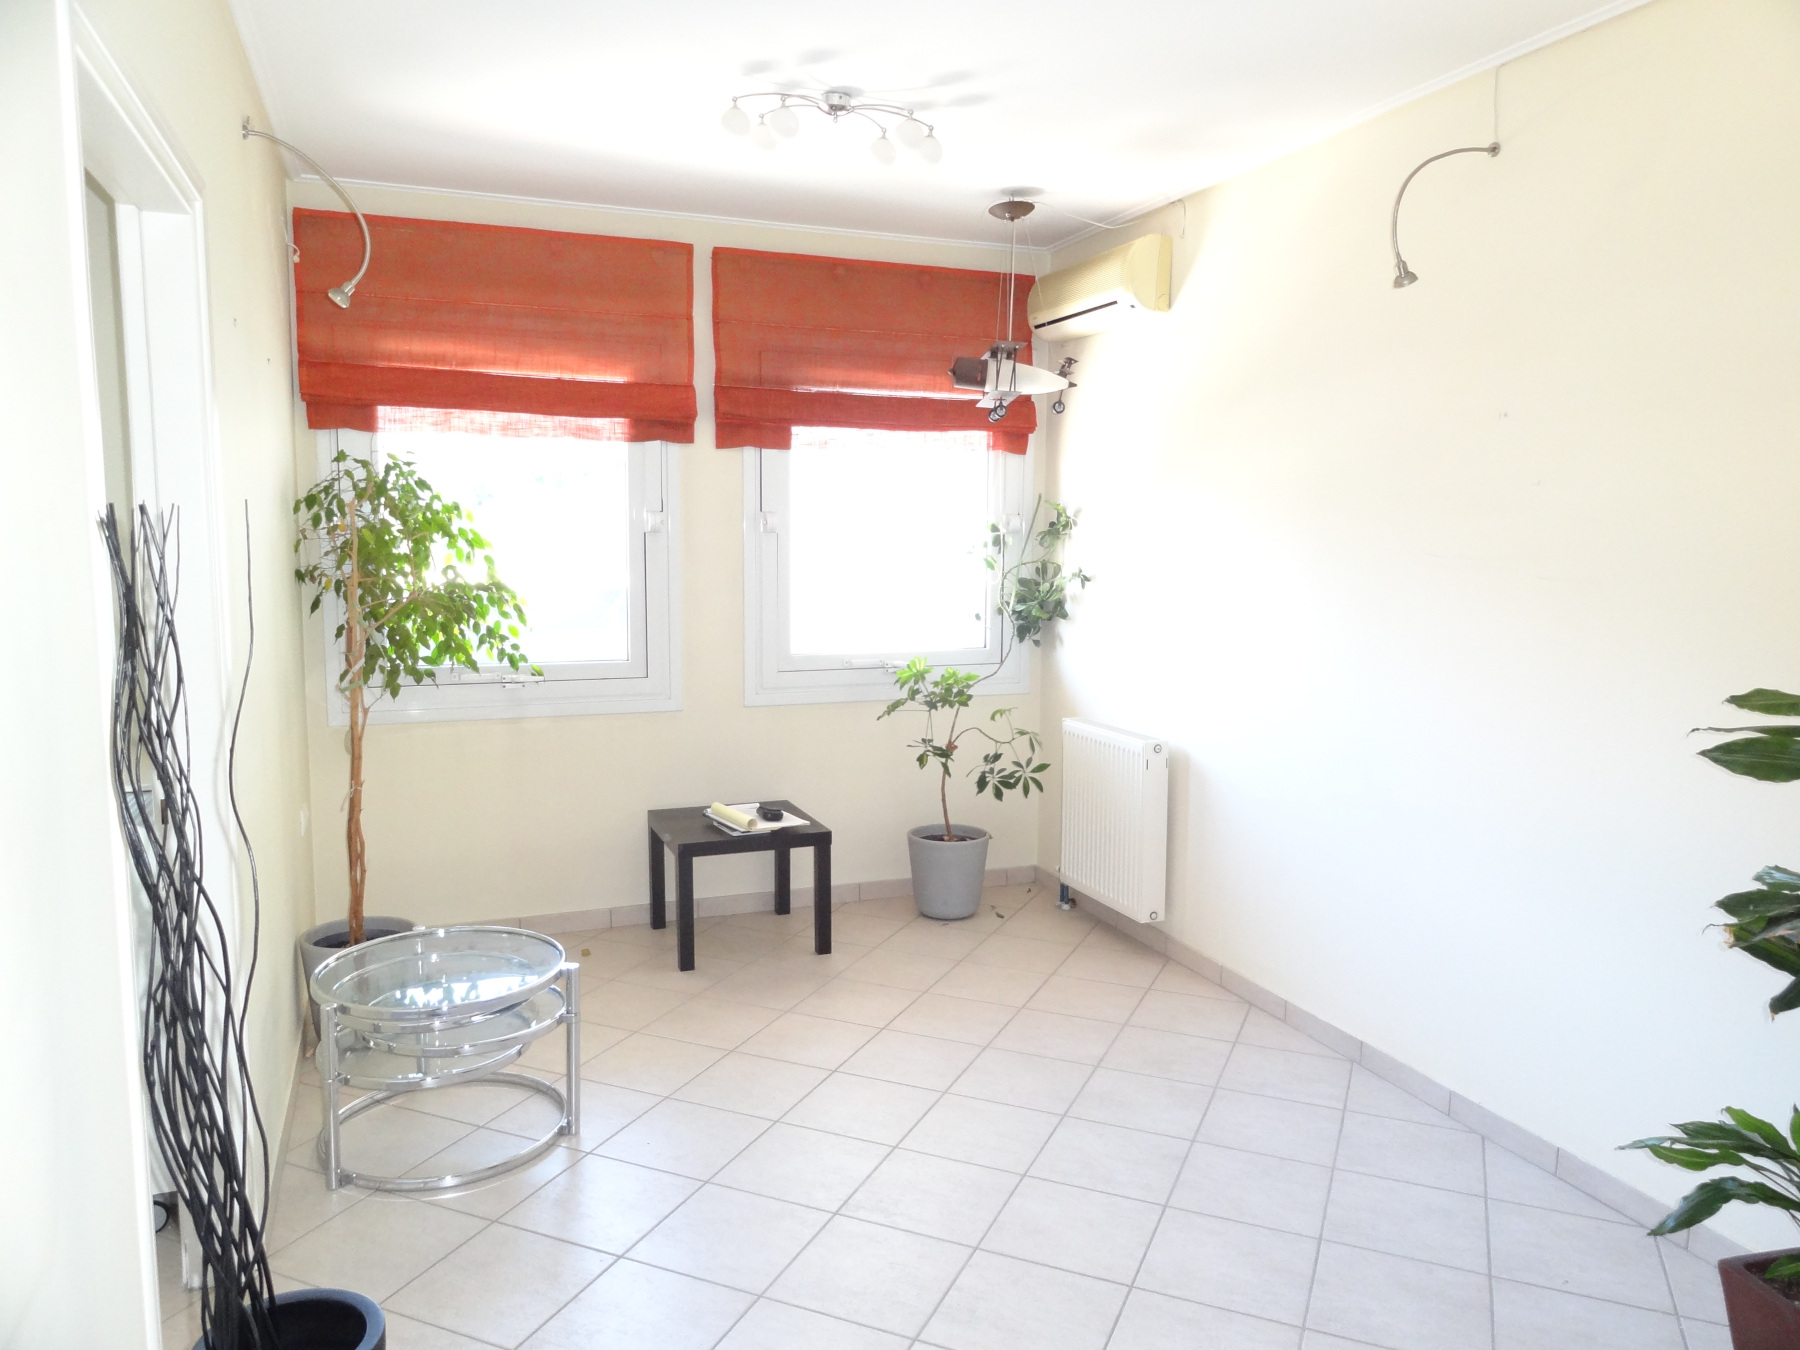 Commercial space for rent, office, 55 sq.m. 1st floor in the center of Ioannina near the building of the Region